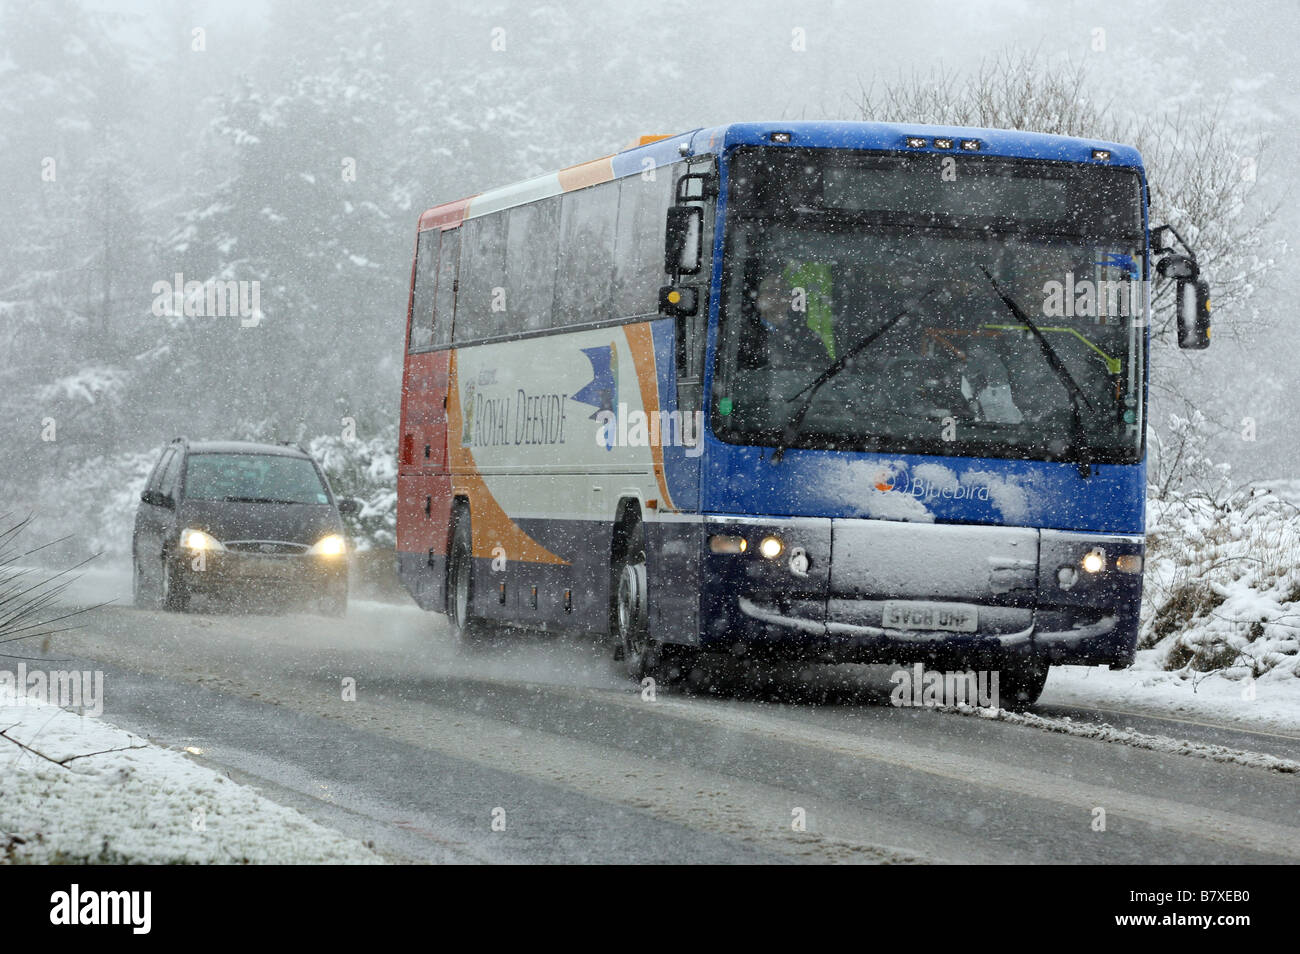 Stagecoach Bluebird bus driving along snow covered road in Rural Aberdeenshire, Scotland, UK - Stock Image